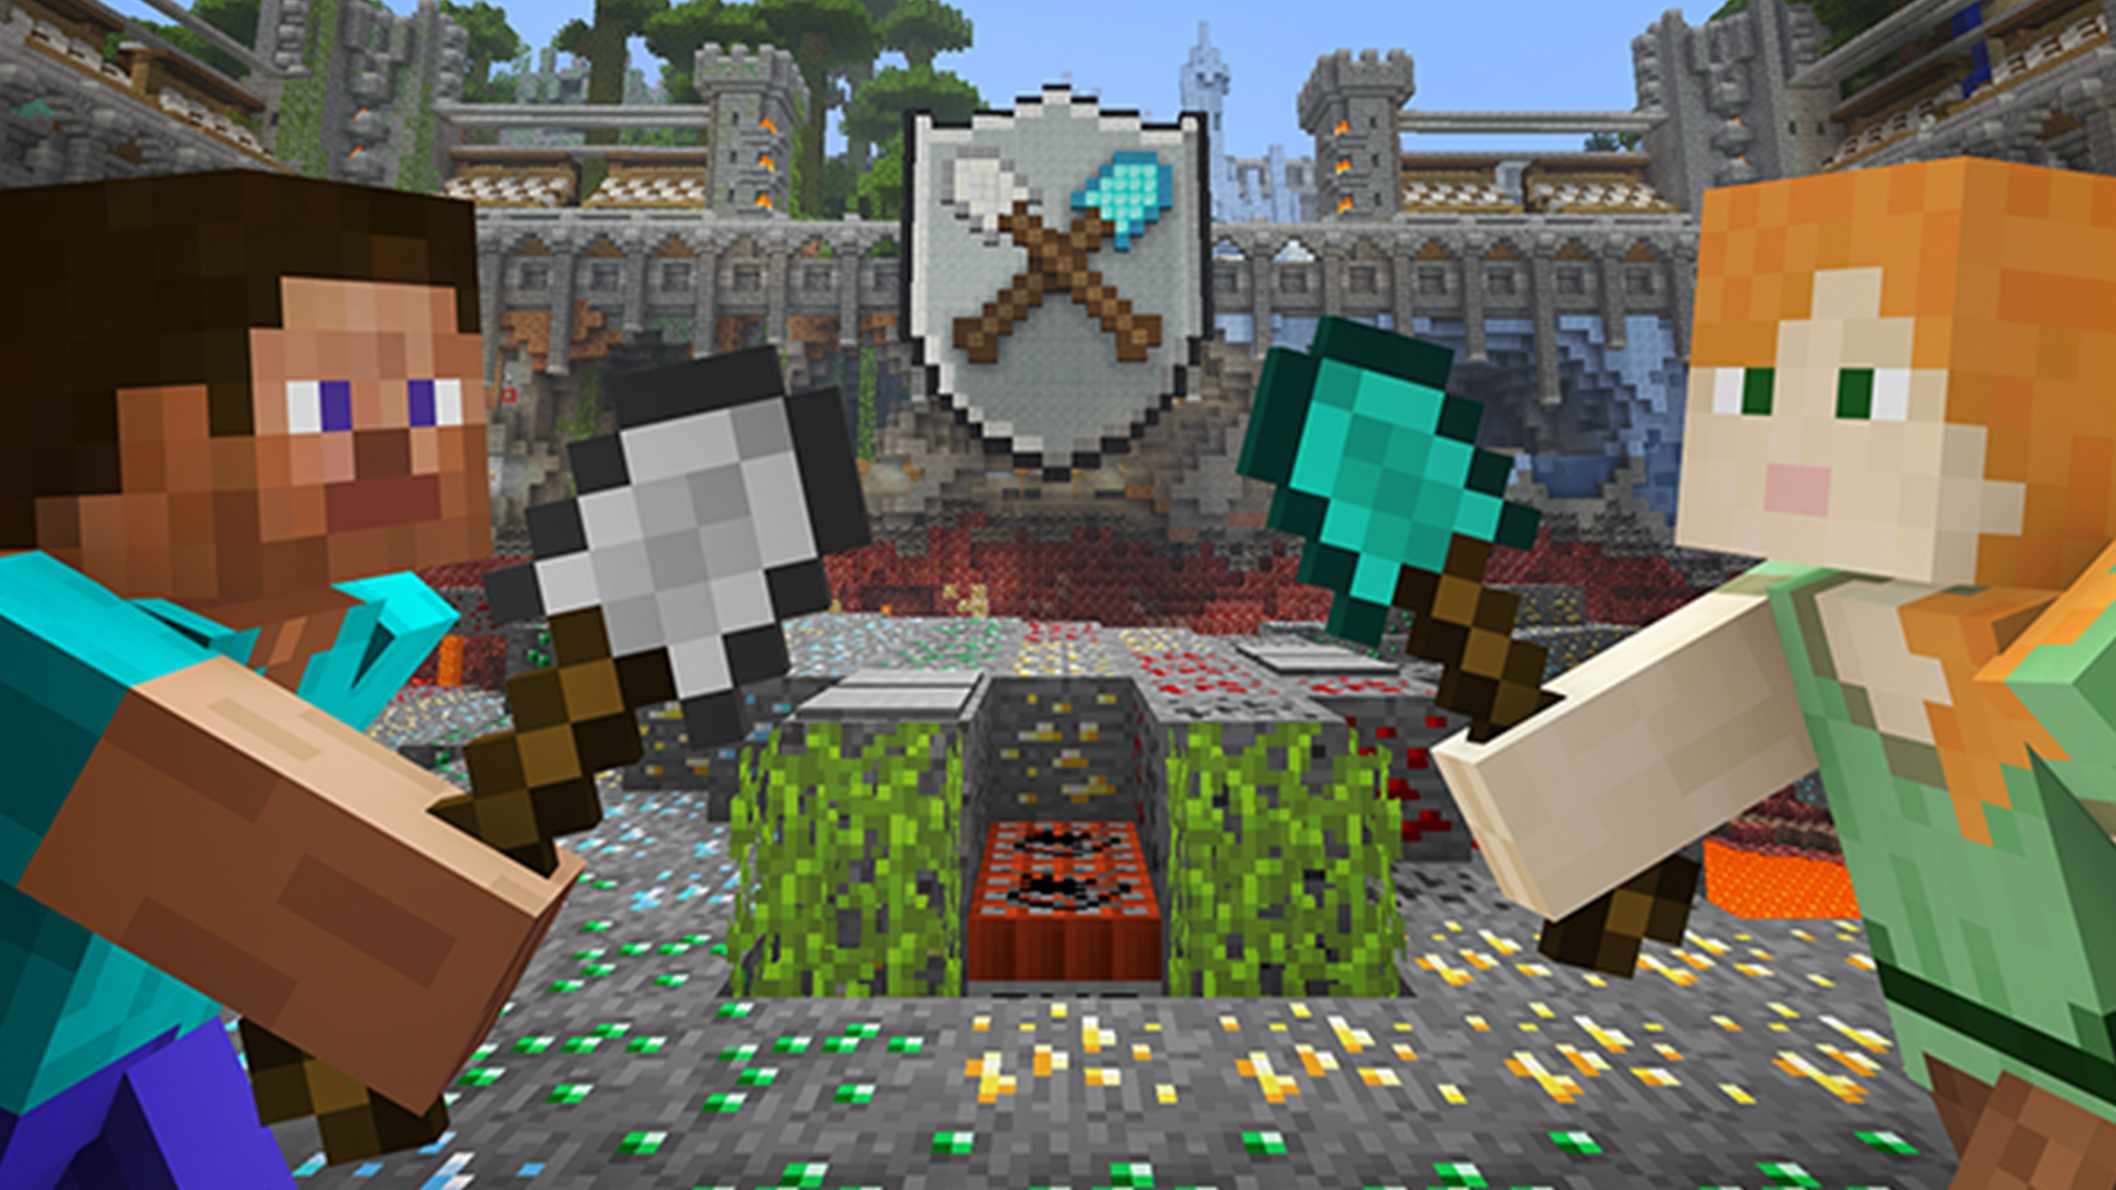 Minecraft screenshot of characters battling each other